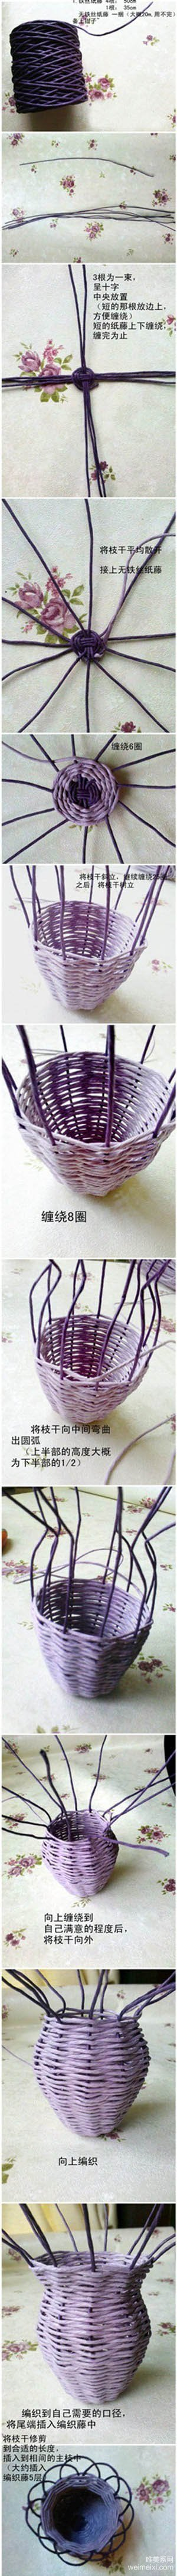 weaved flower basket or vase tutorial